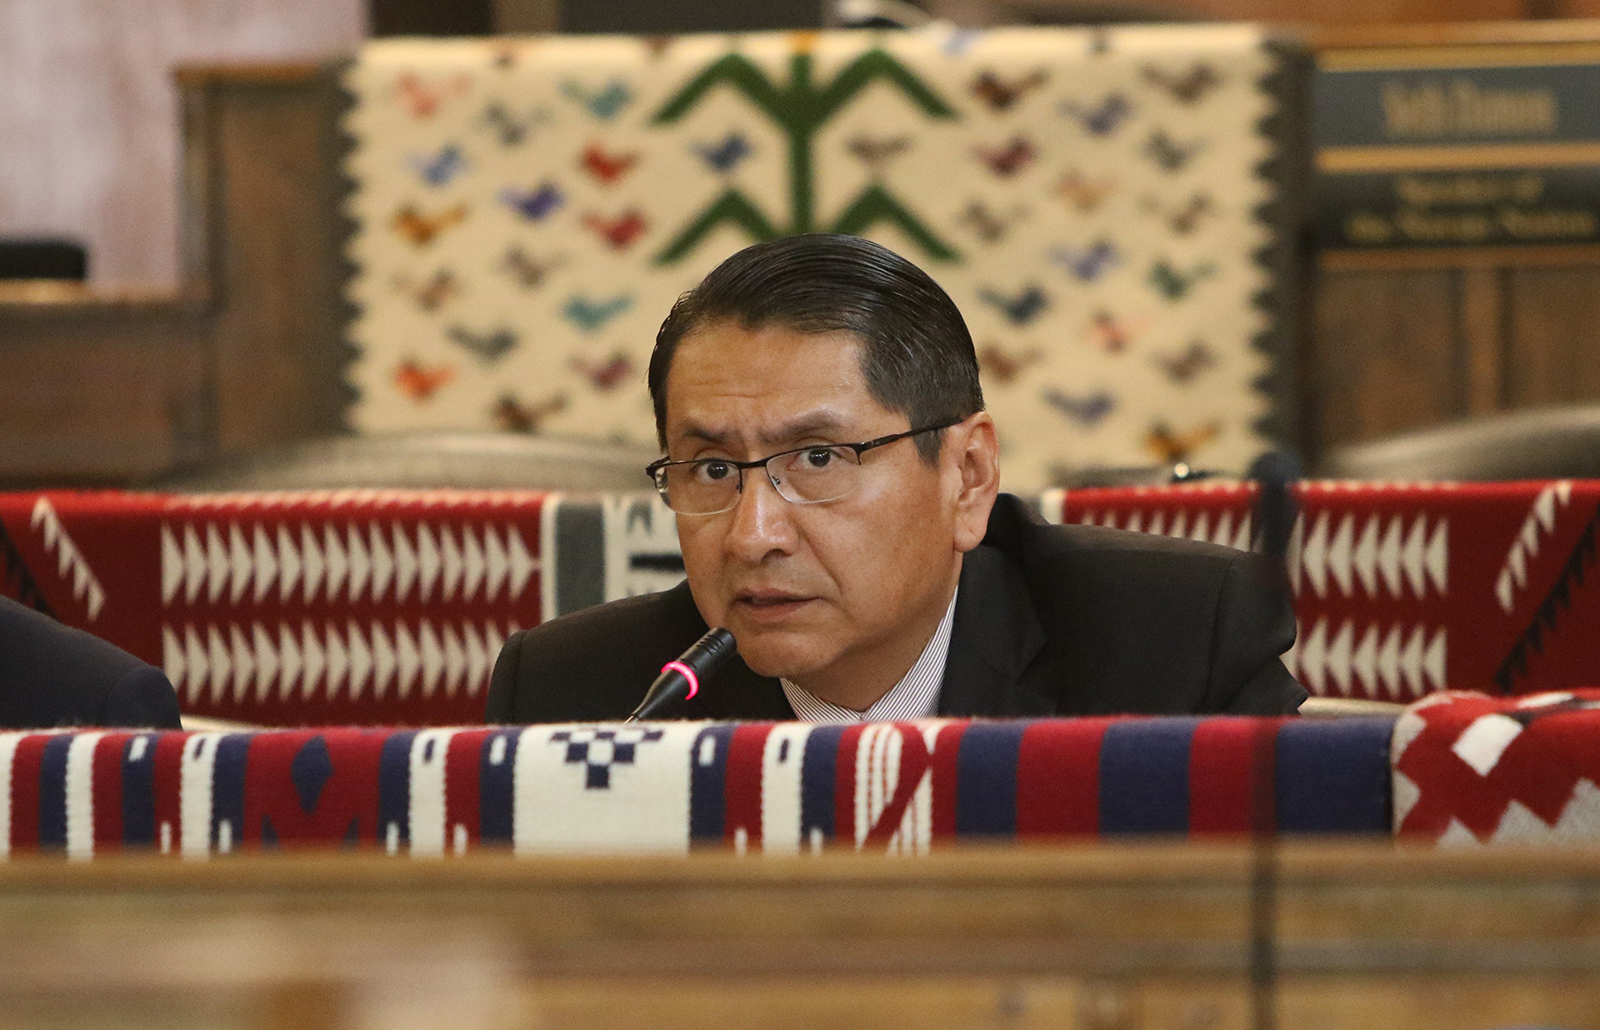 Navajo Nation President Jonathan Nez delivers the State of the Nation address at the summer session for the Navajo Nation Council in Window Rock, Arizona, on July 15, 2019.